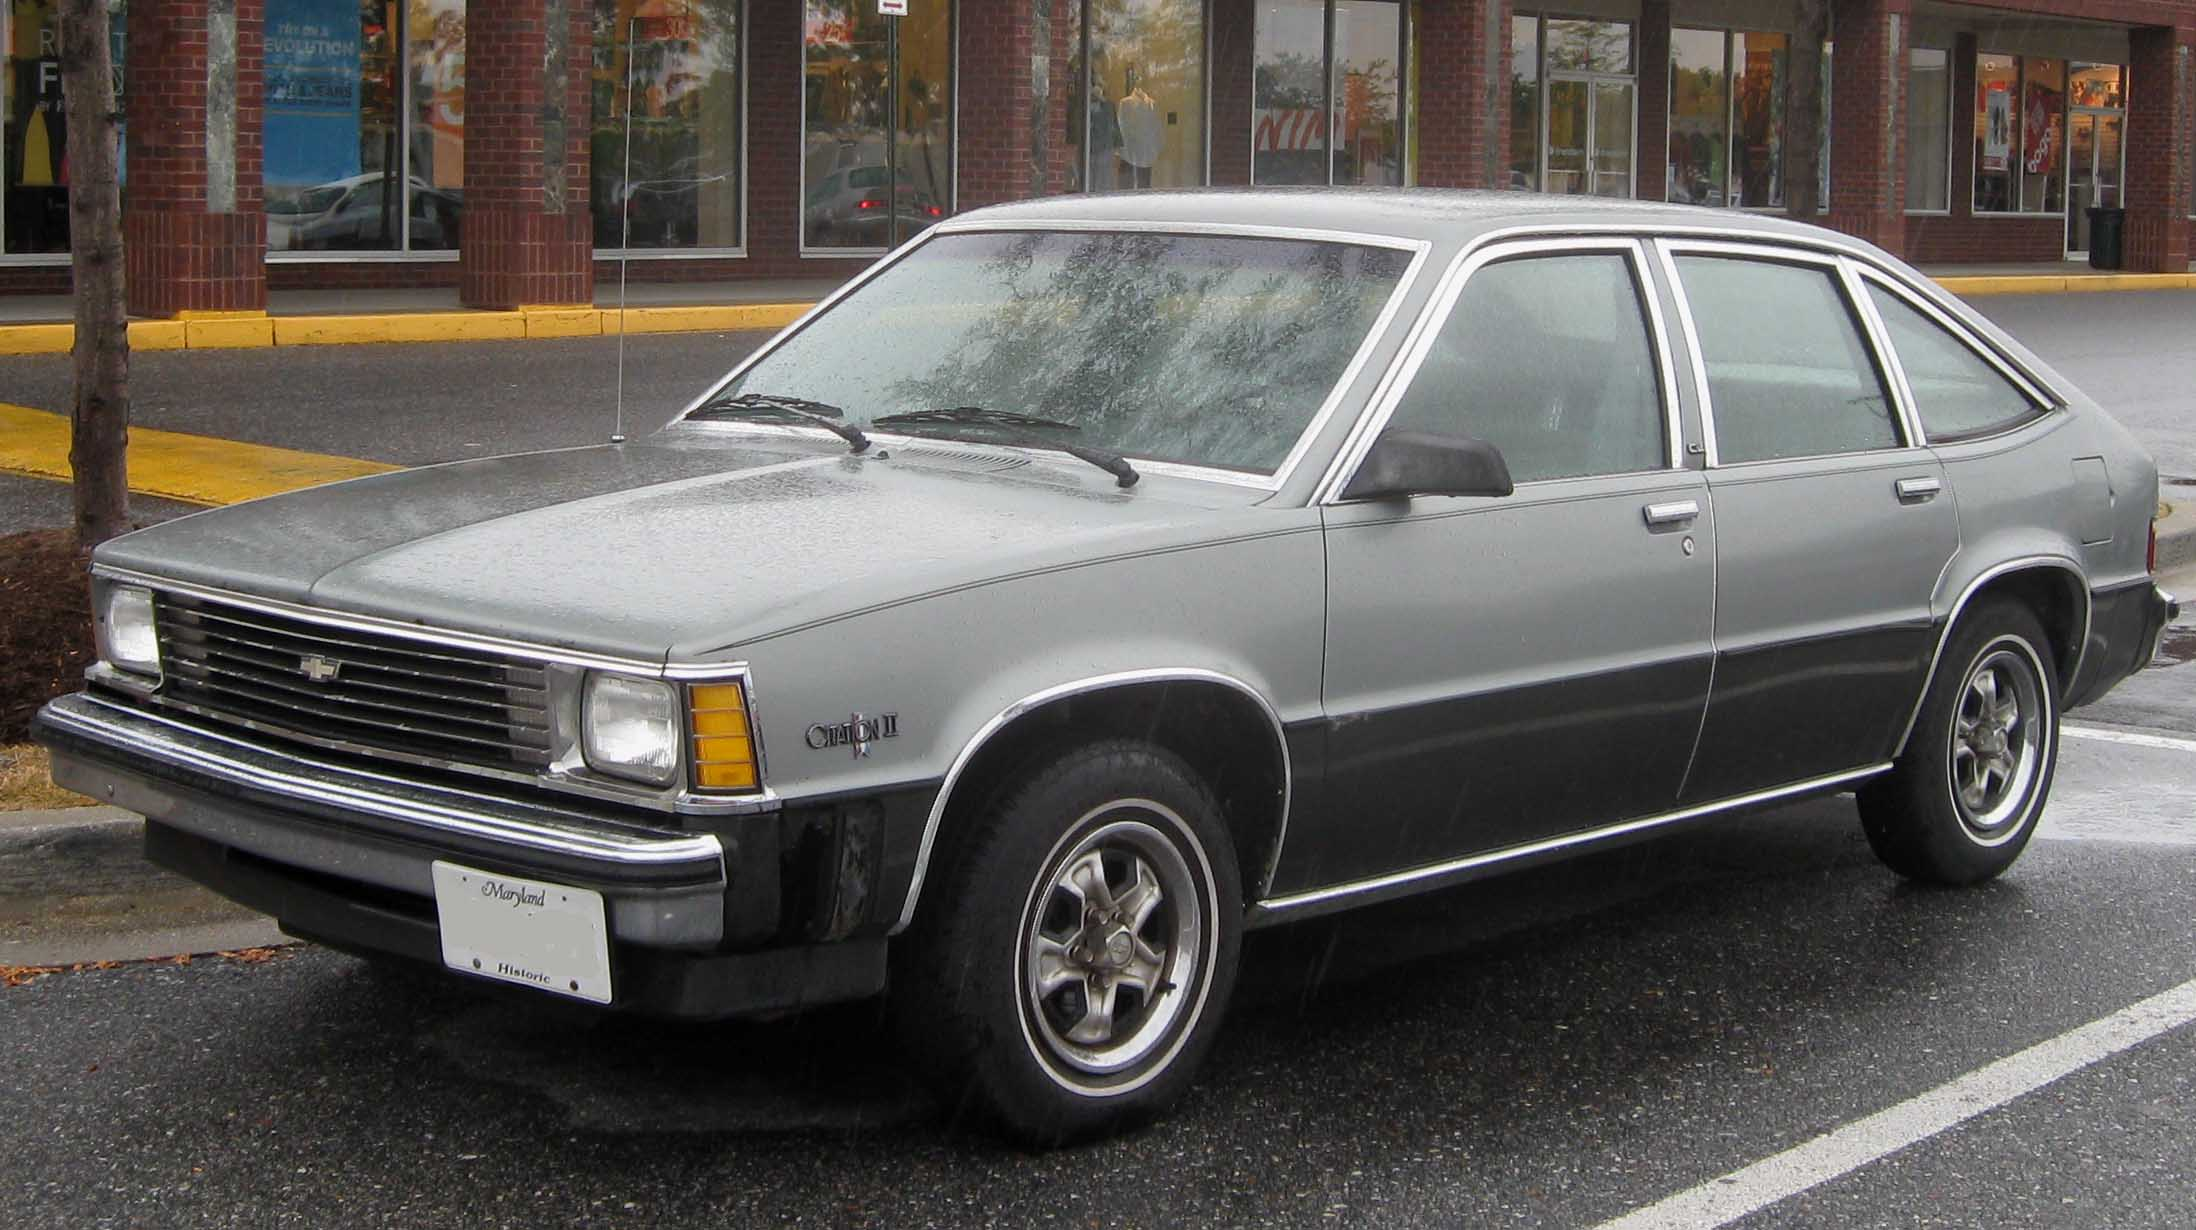 Chevrolet Citation #1